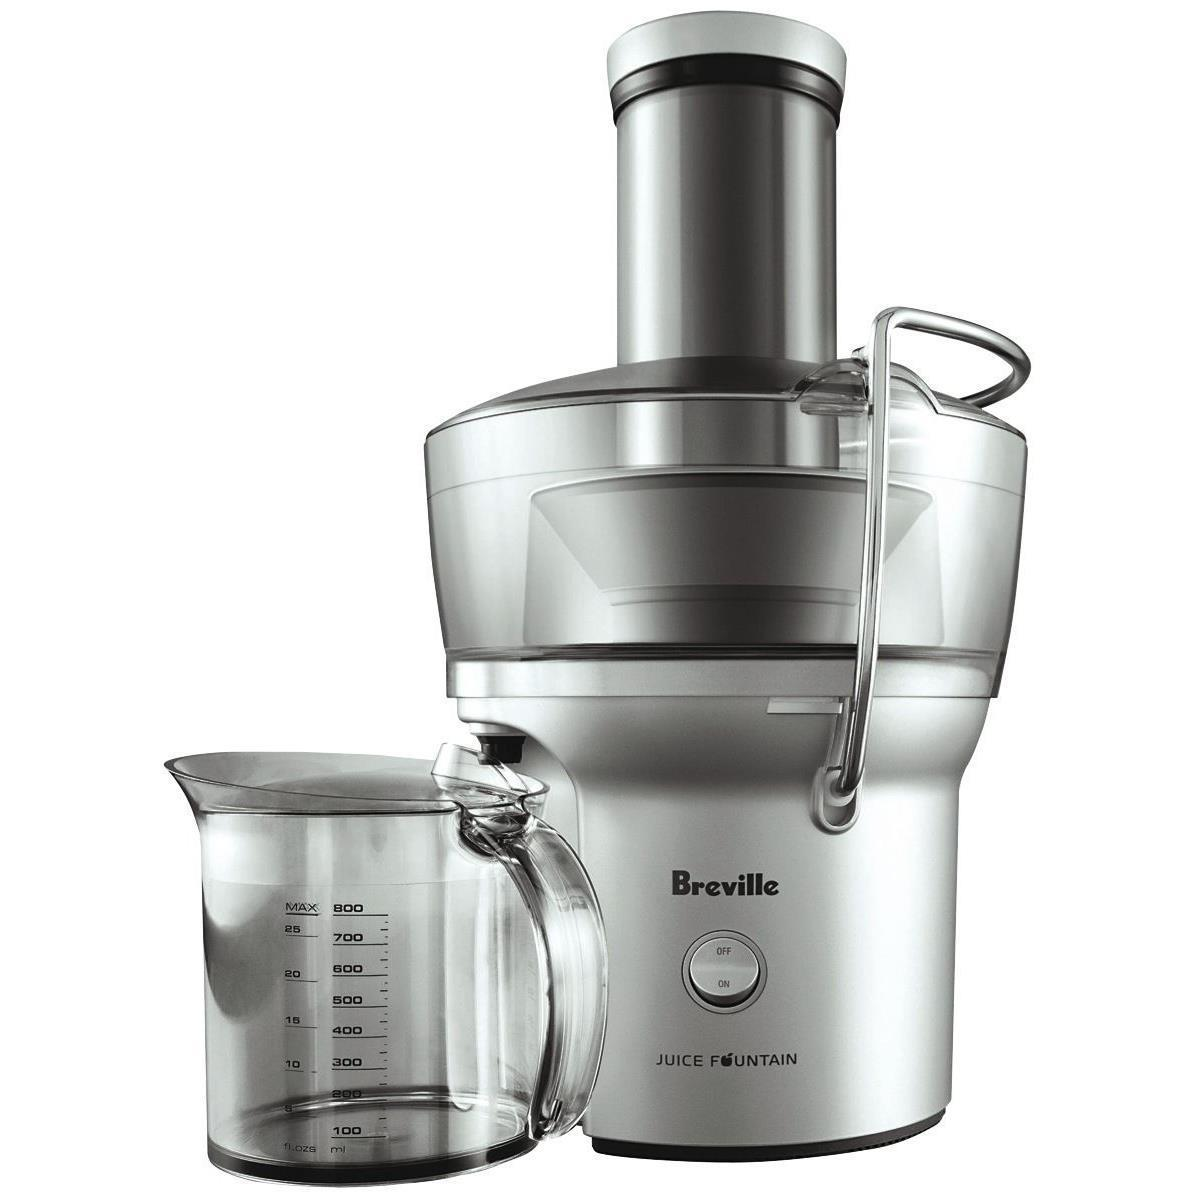 Breville the Juice Fountain Compact Juicer